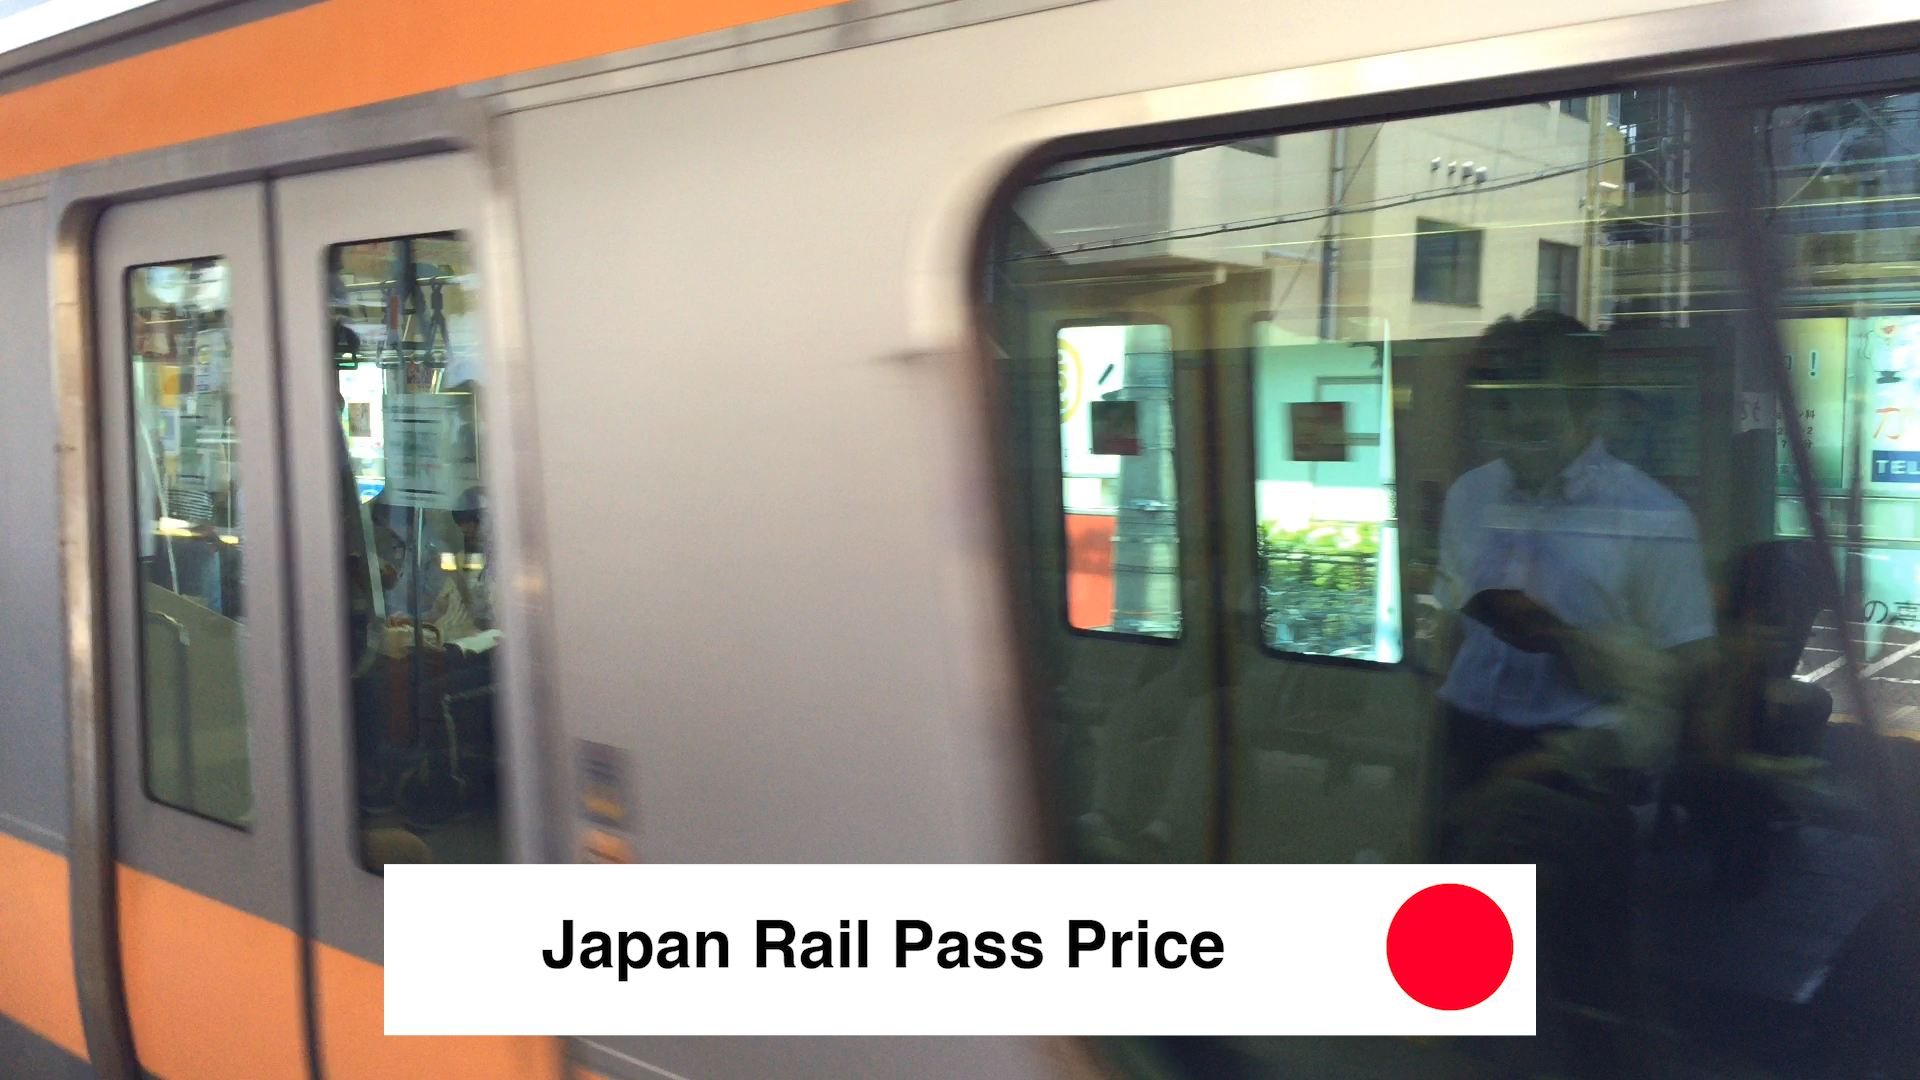 Japan Rail Pass Price - How To Use Japan Rail Pass - Where To Buy Japan Rail Pass How To Use JR Pass In Tokyo. JR Pass Price